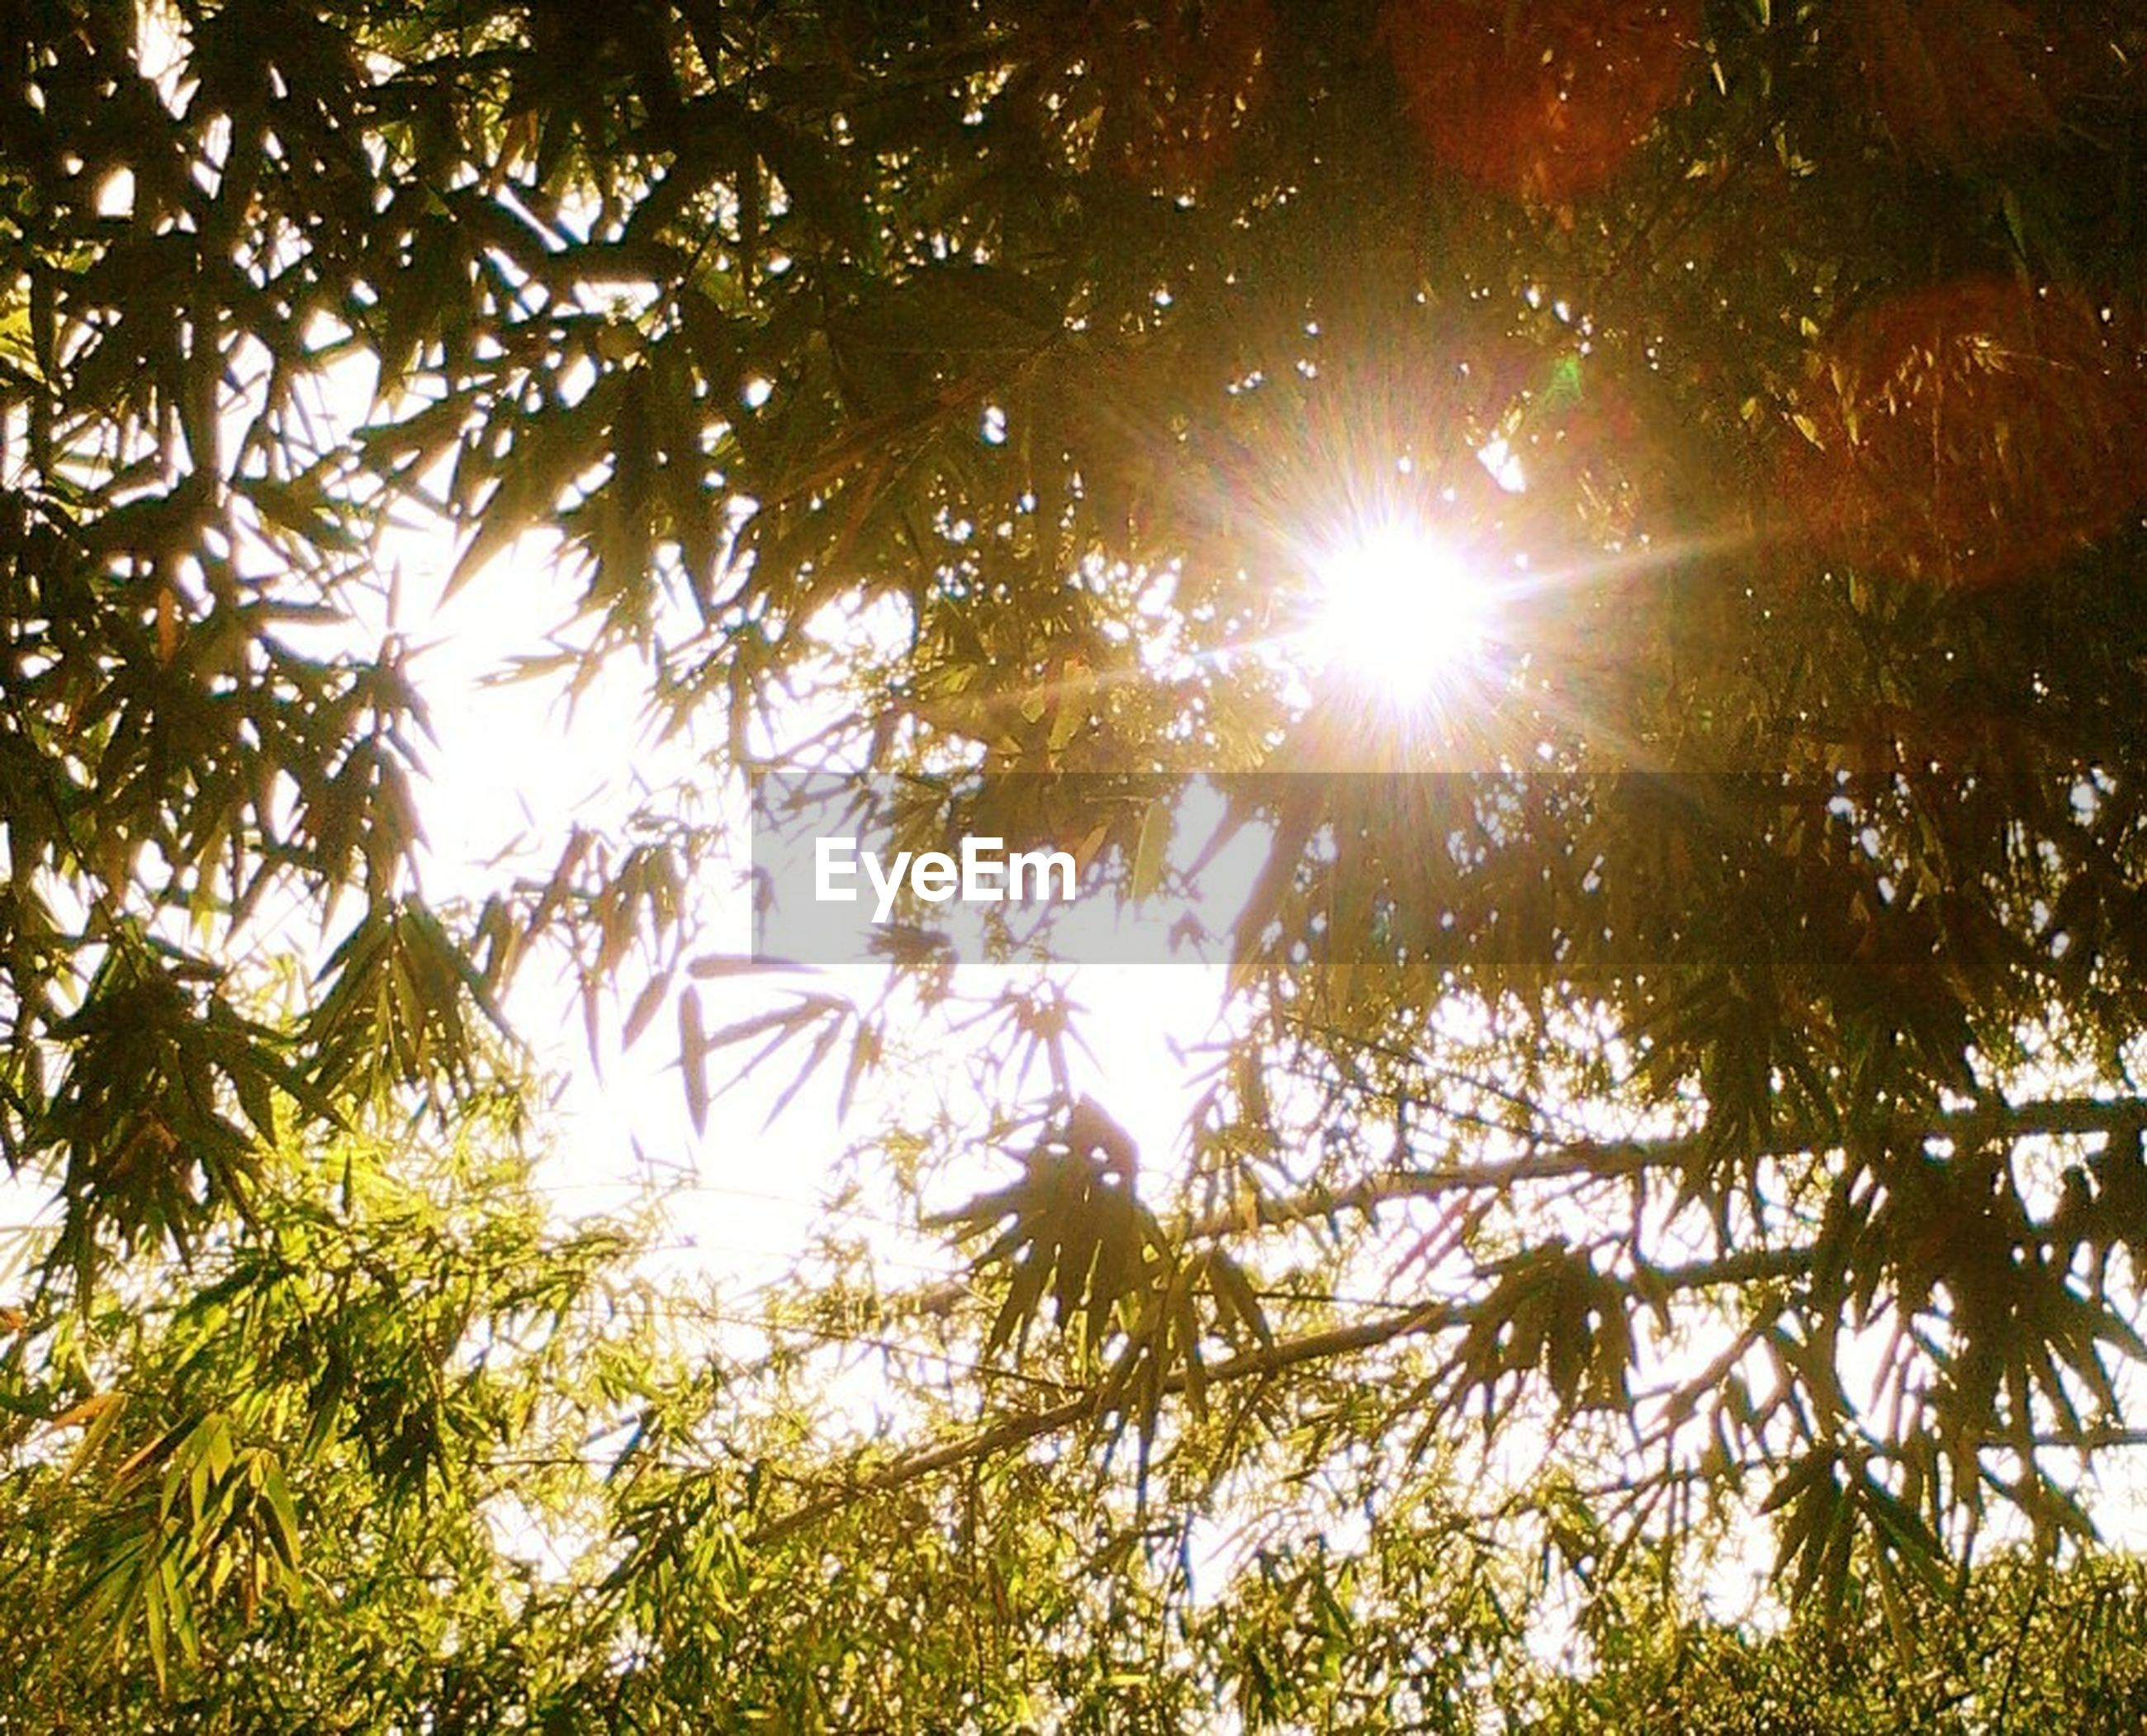 sun, tree, sunbeam, low angle view, sunlight, lens flare, growth, branch, tranquility, nature, beauty in nature, sunny, bright, forest, scenics, back lit, tranquil scene, outdoors, day, full frame